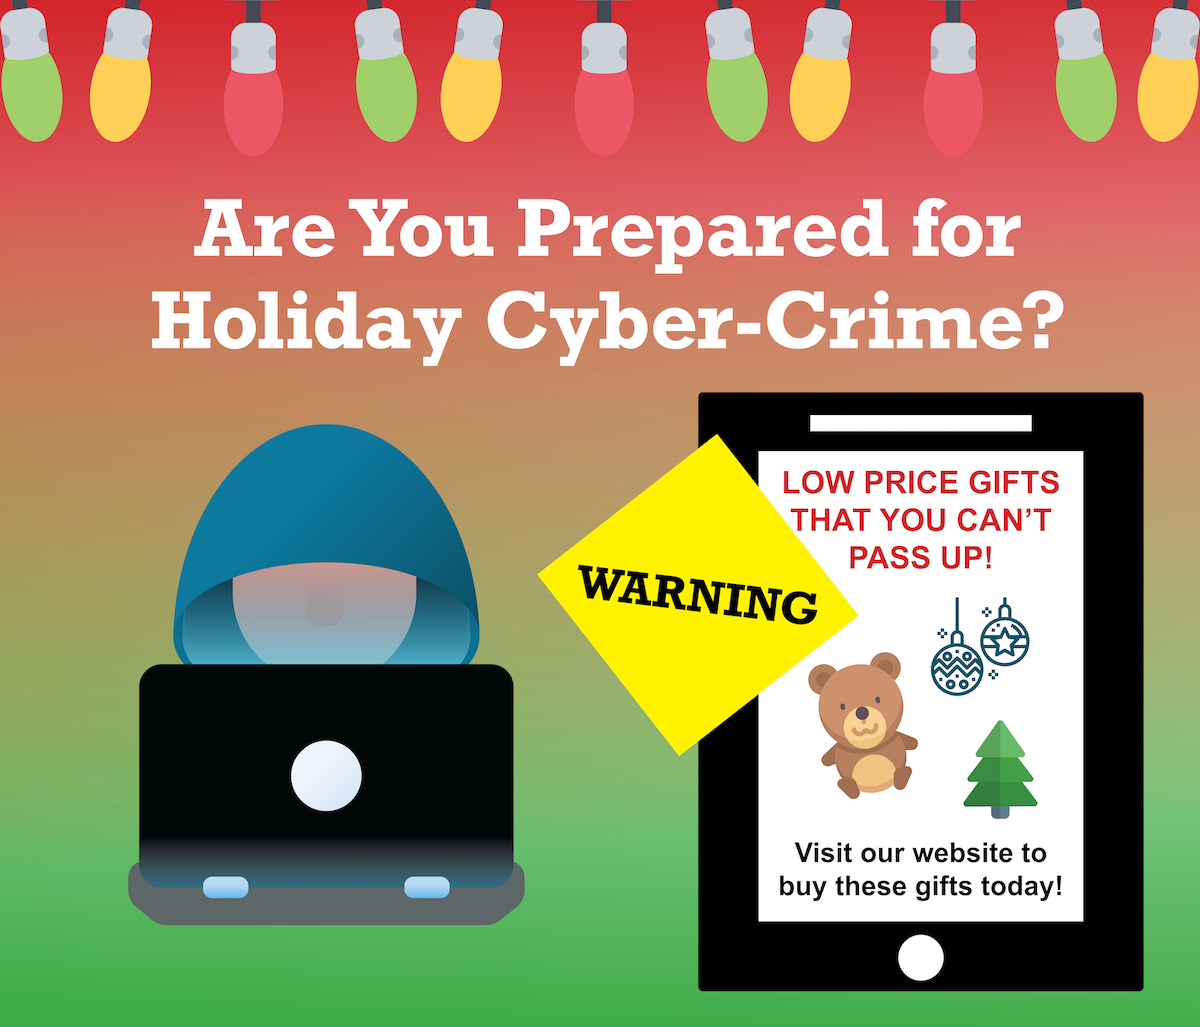 Holiday Cyber-Crime